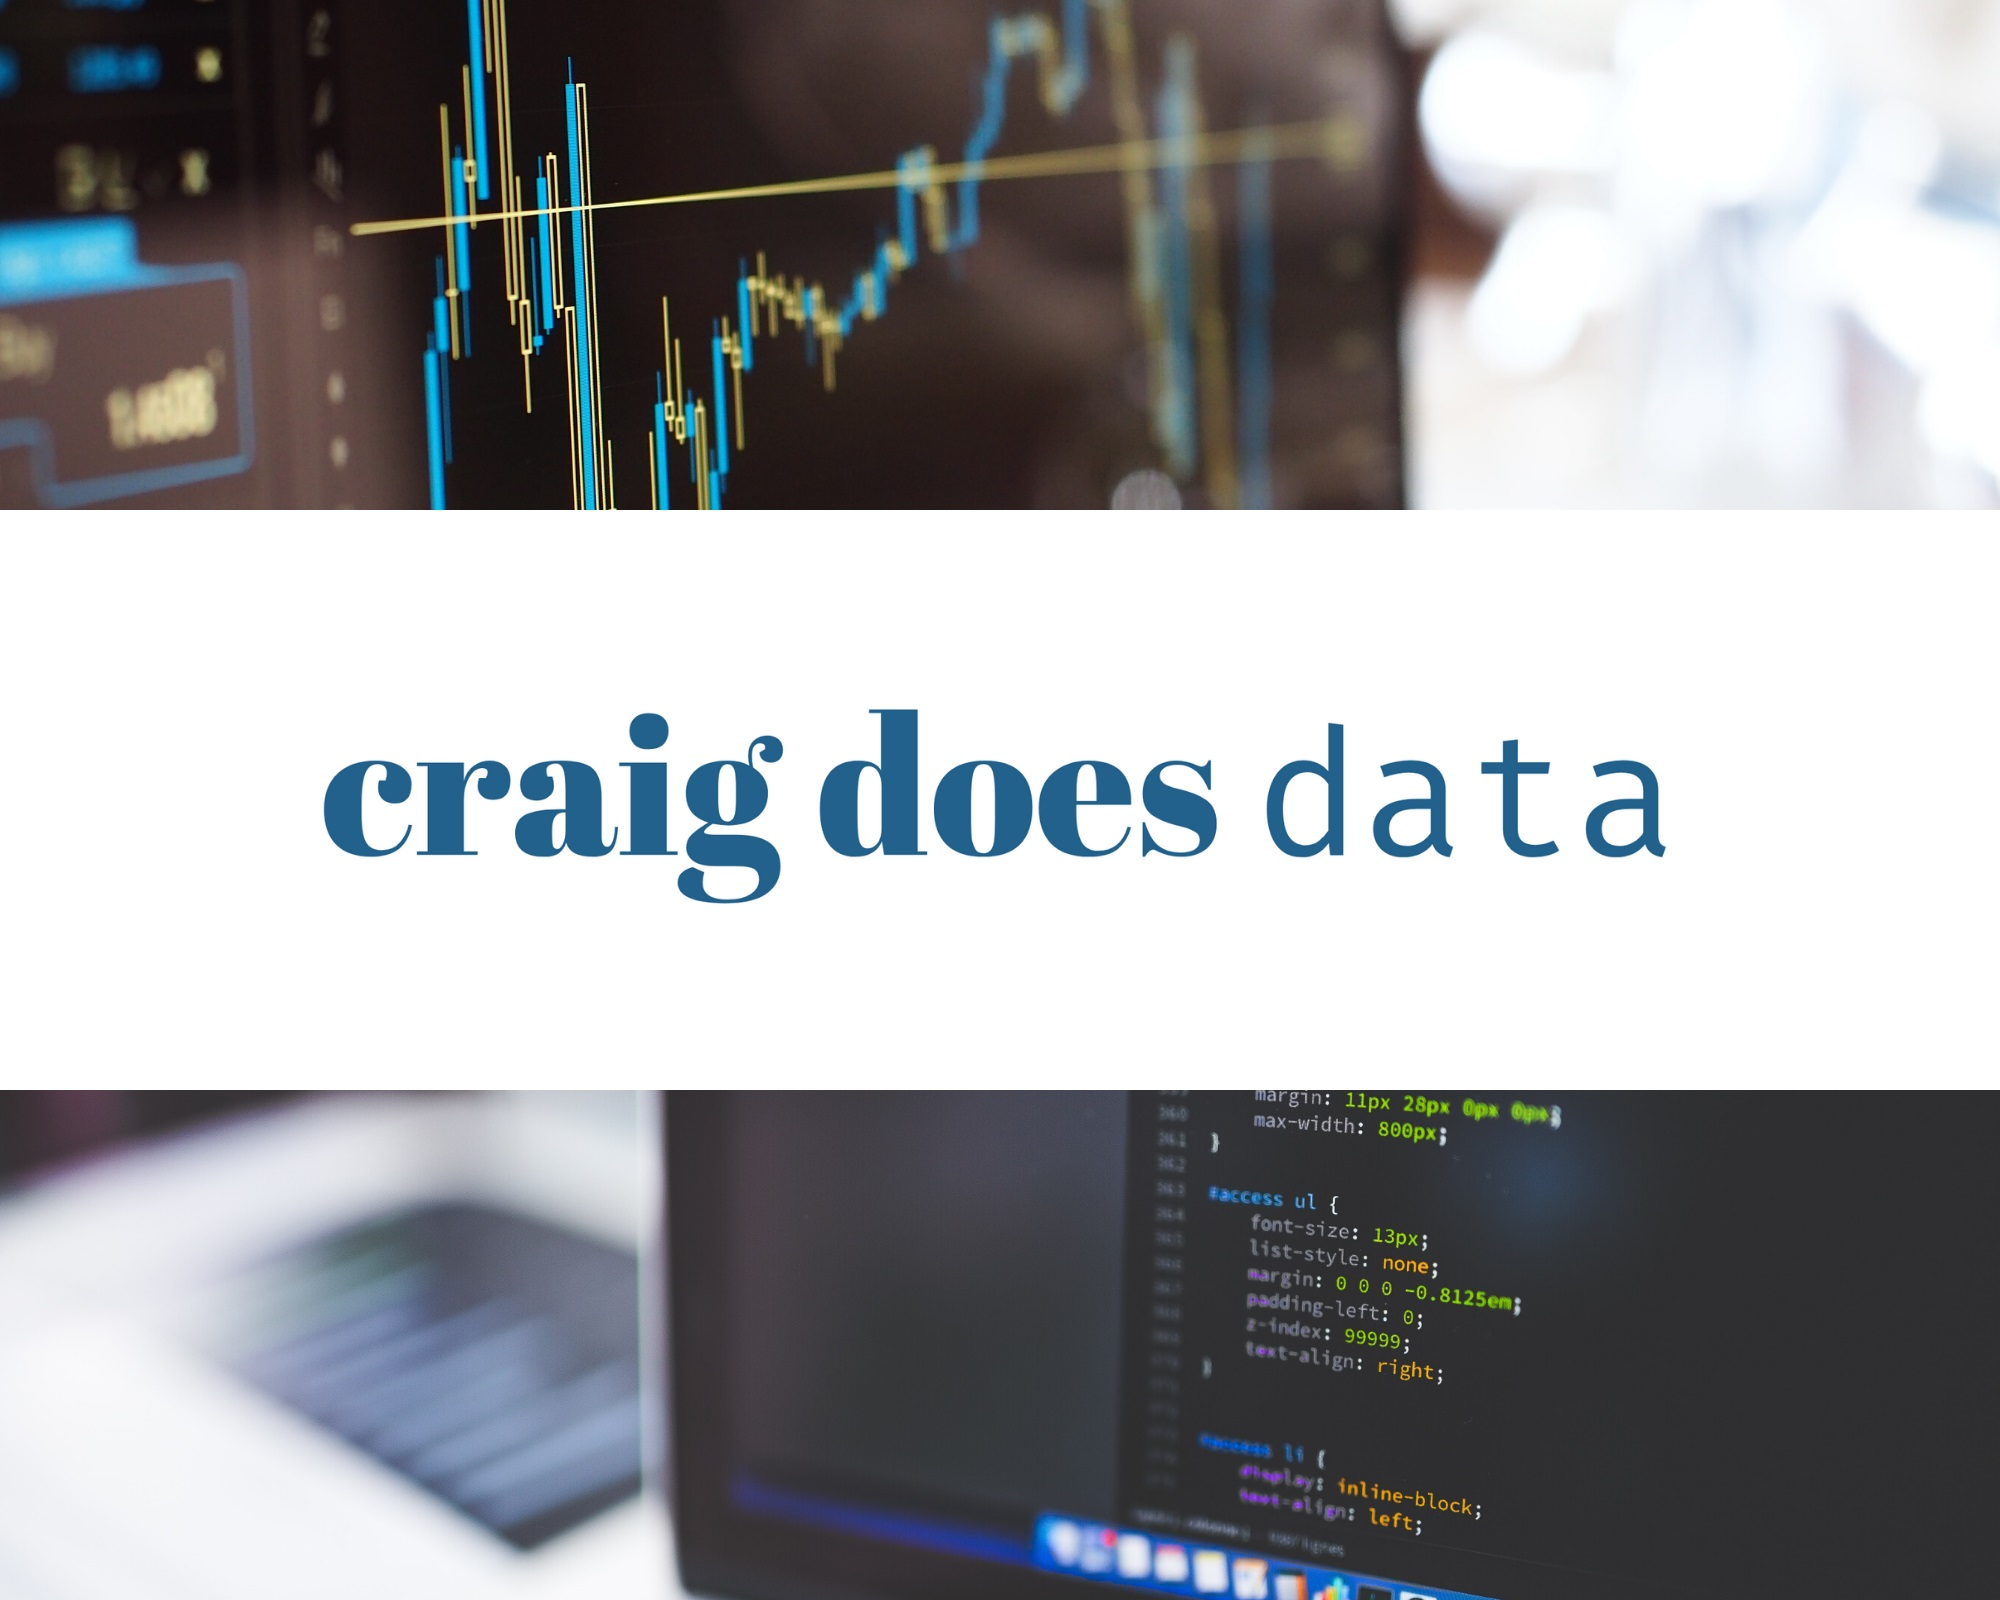 Some craigdoesdata branding images